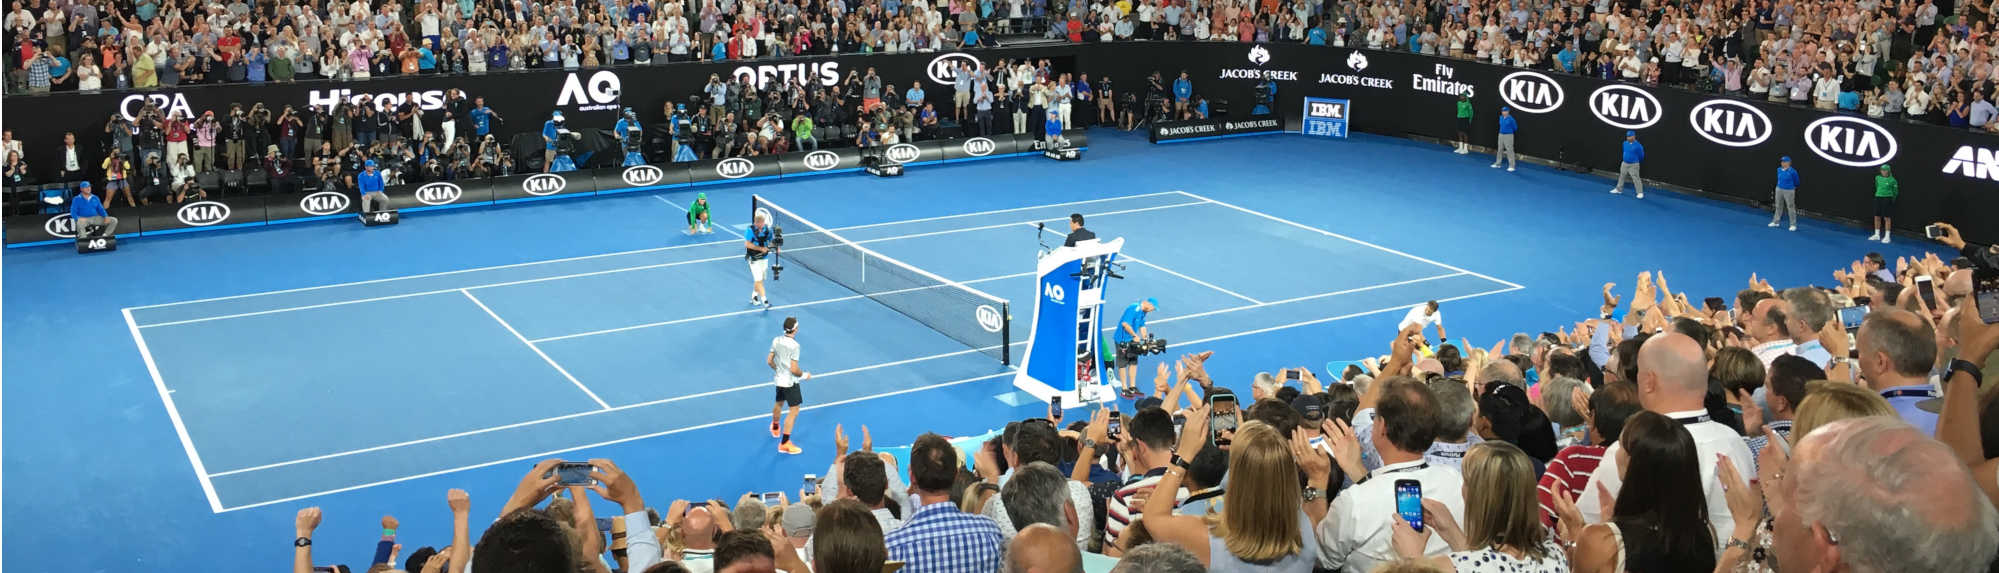 Everything you need to know about the Australian Open